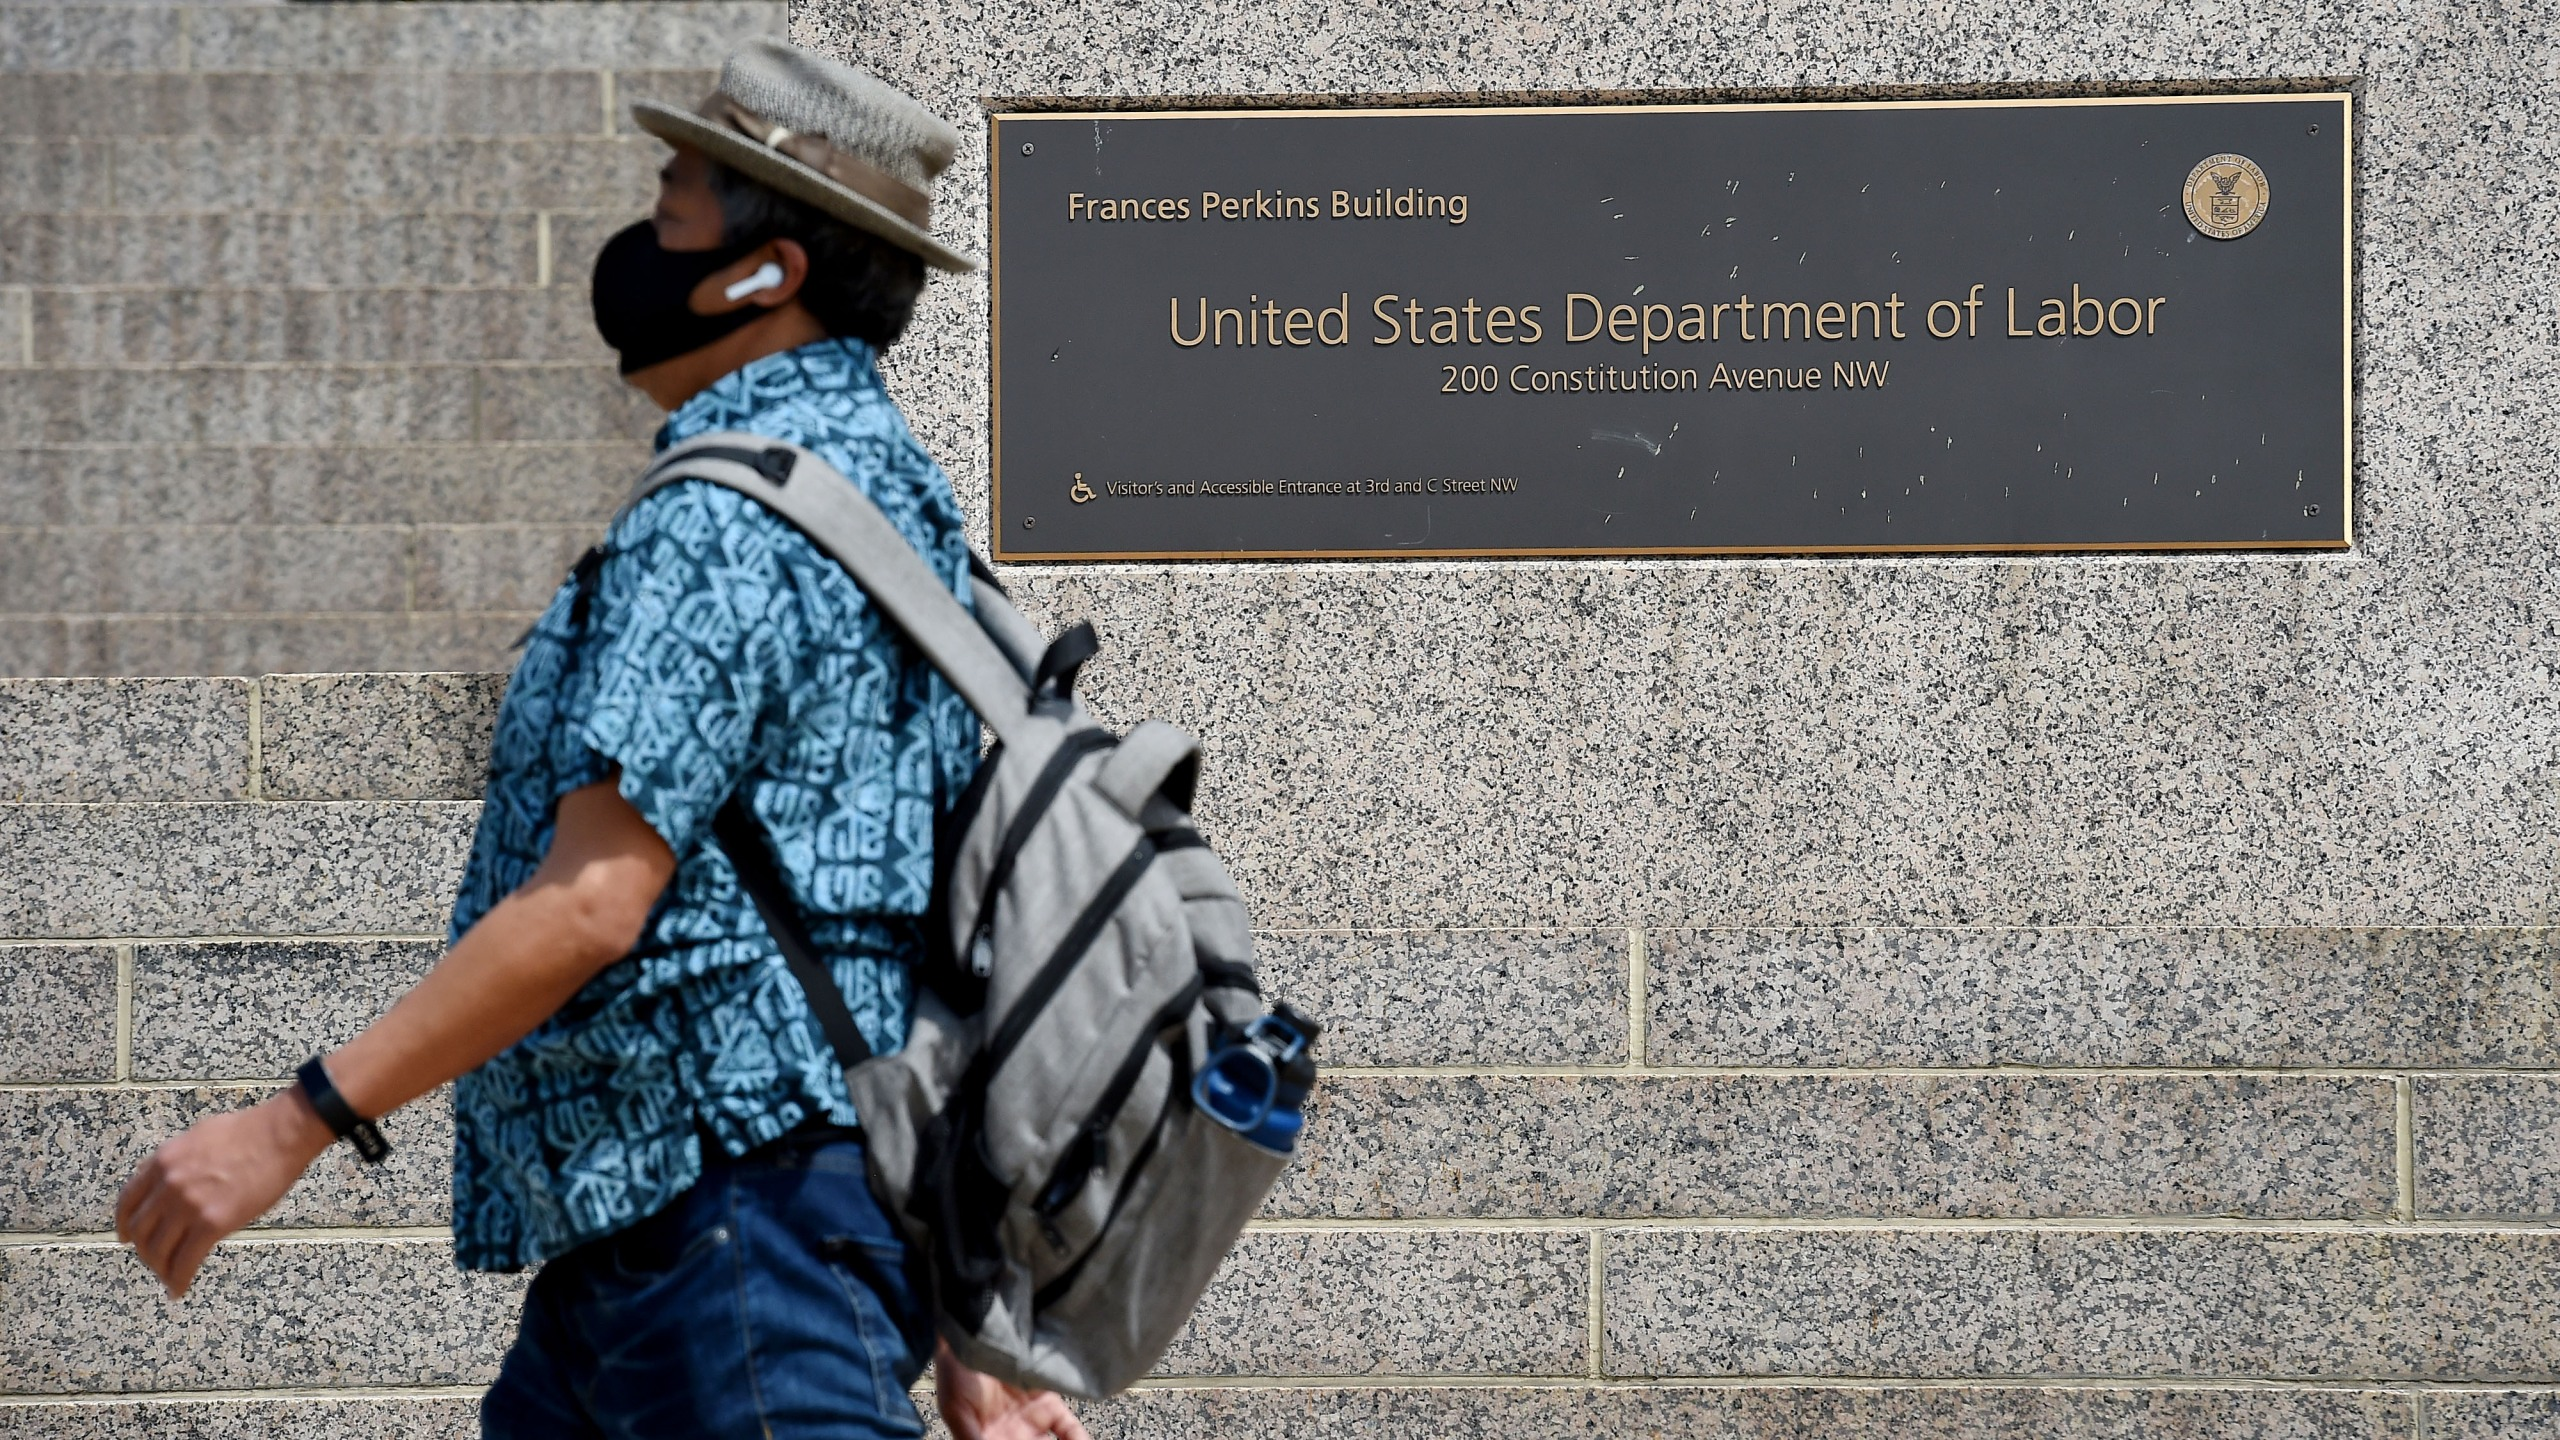 A man wearing a face mask walks past a sign in front of the US Department of Labor amid the coronavirus pandemic on April 29, 2020, in Washington, DC. (OLIVIER DOULIERY/AFP via Getty Images)